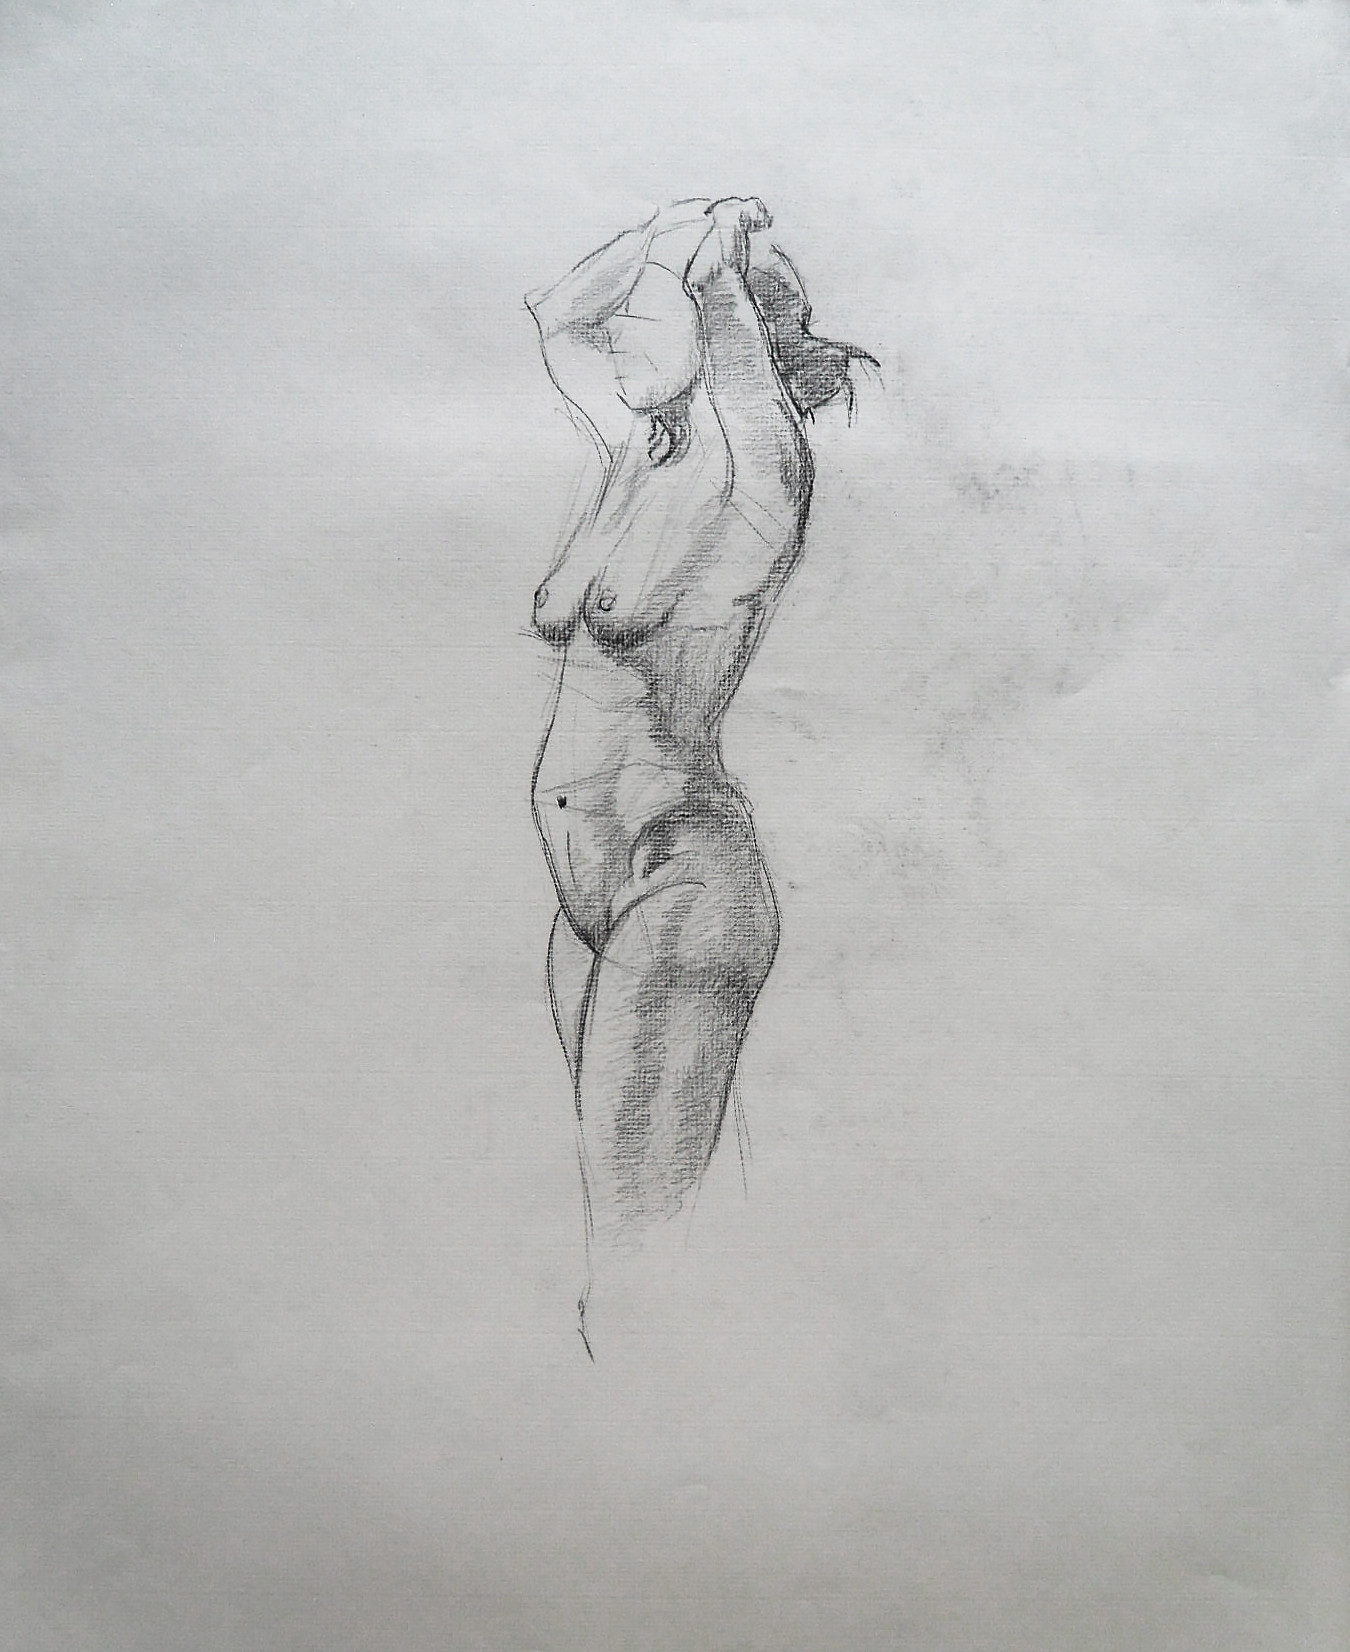 5 min. sketch from a female model. Charcoal on paper